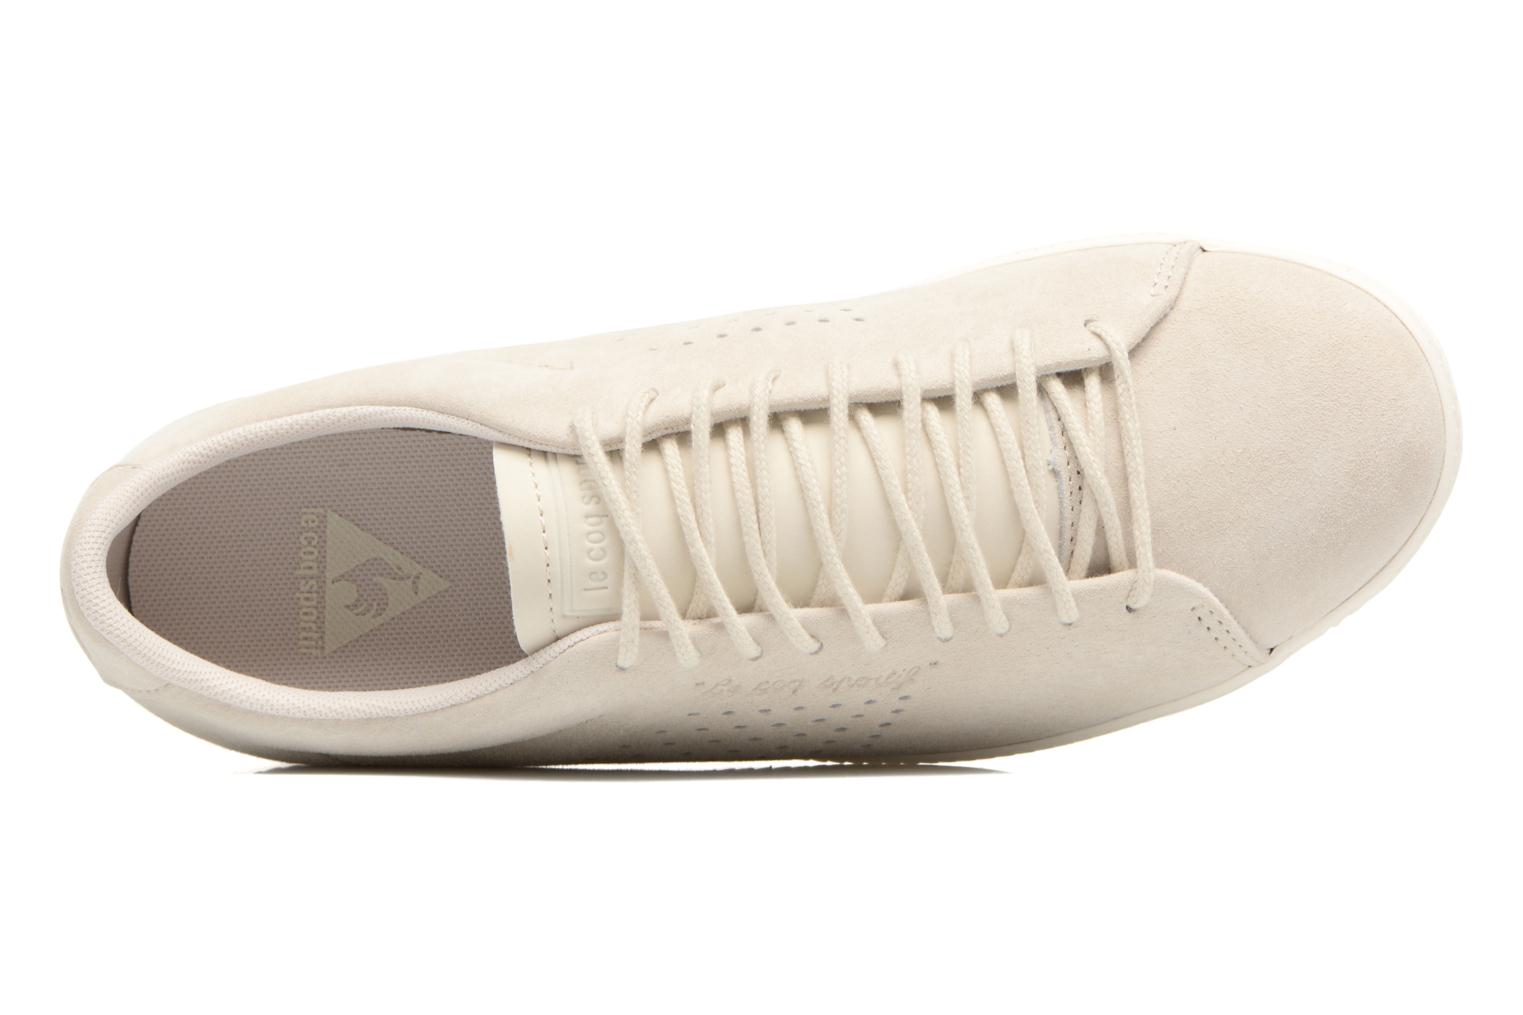 Trainers Le Coq Sportif Charline Nubuck Beige view from the left